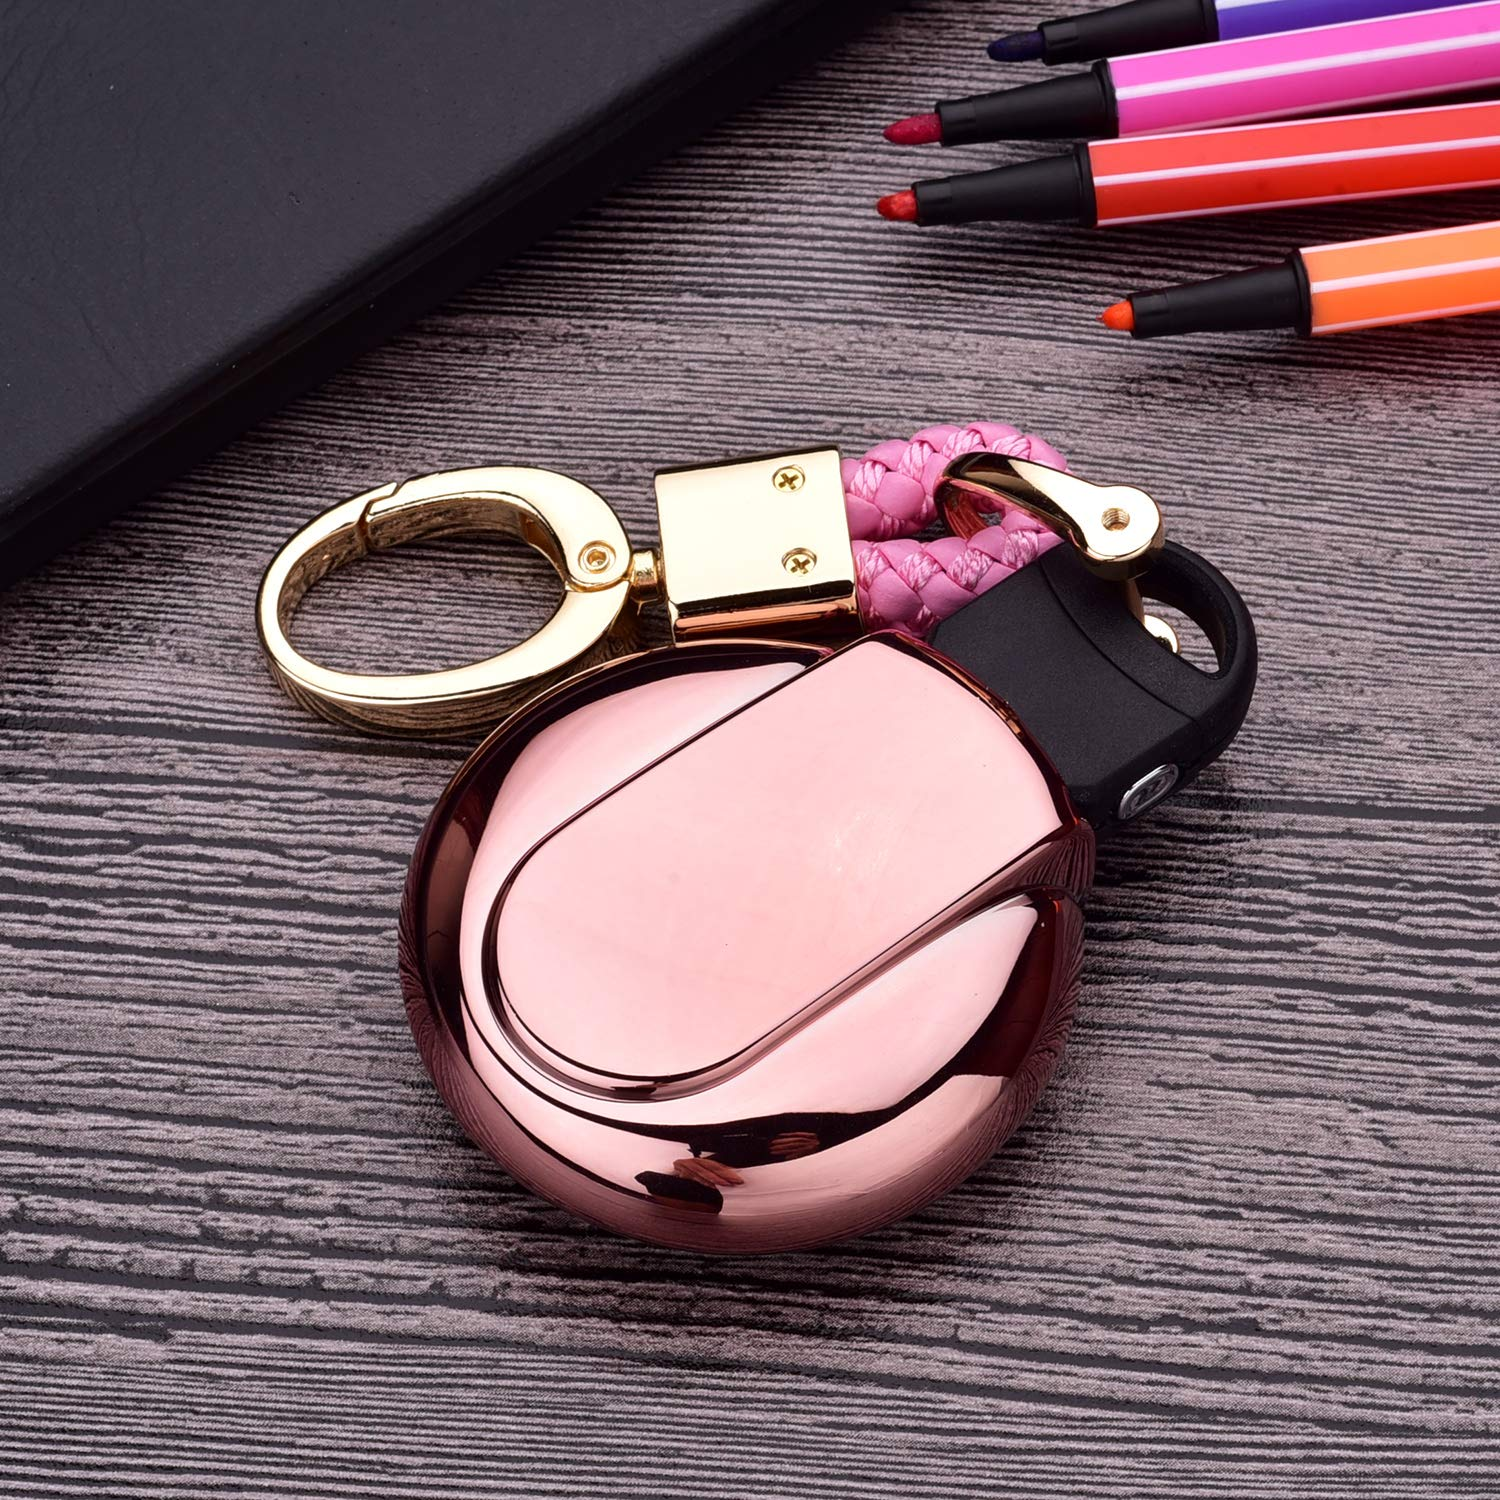 Luxury 3 4 Buttons Soft TPU Smart Remote Key Fob case Cover for BMW Mini Cooper F54 F55 F56 F57 F60,with Keychain Royalfox Pink TM